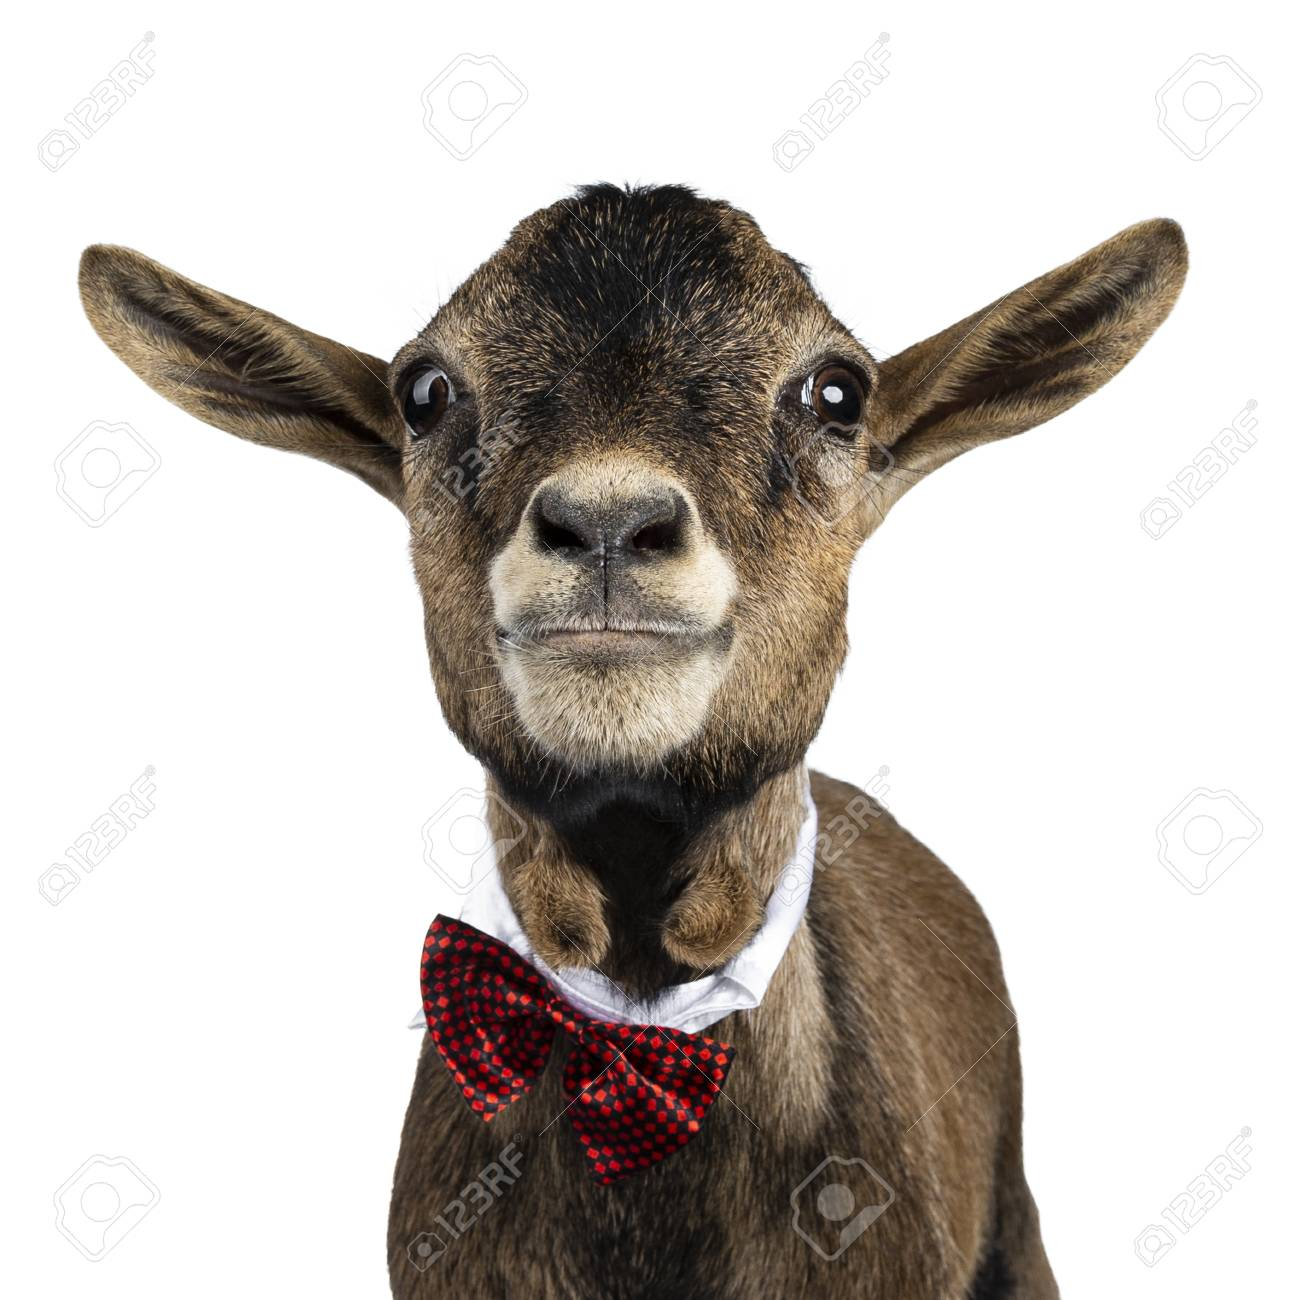 Head shot of funny brown pygmy goat wearing a white collar and red / black checkered bow tie. Looking straight at camera. Isolated on white background. - 121765972